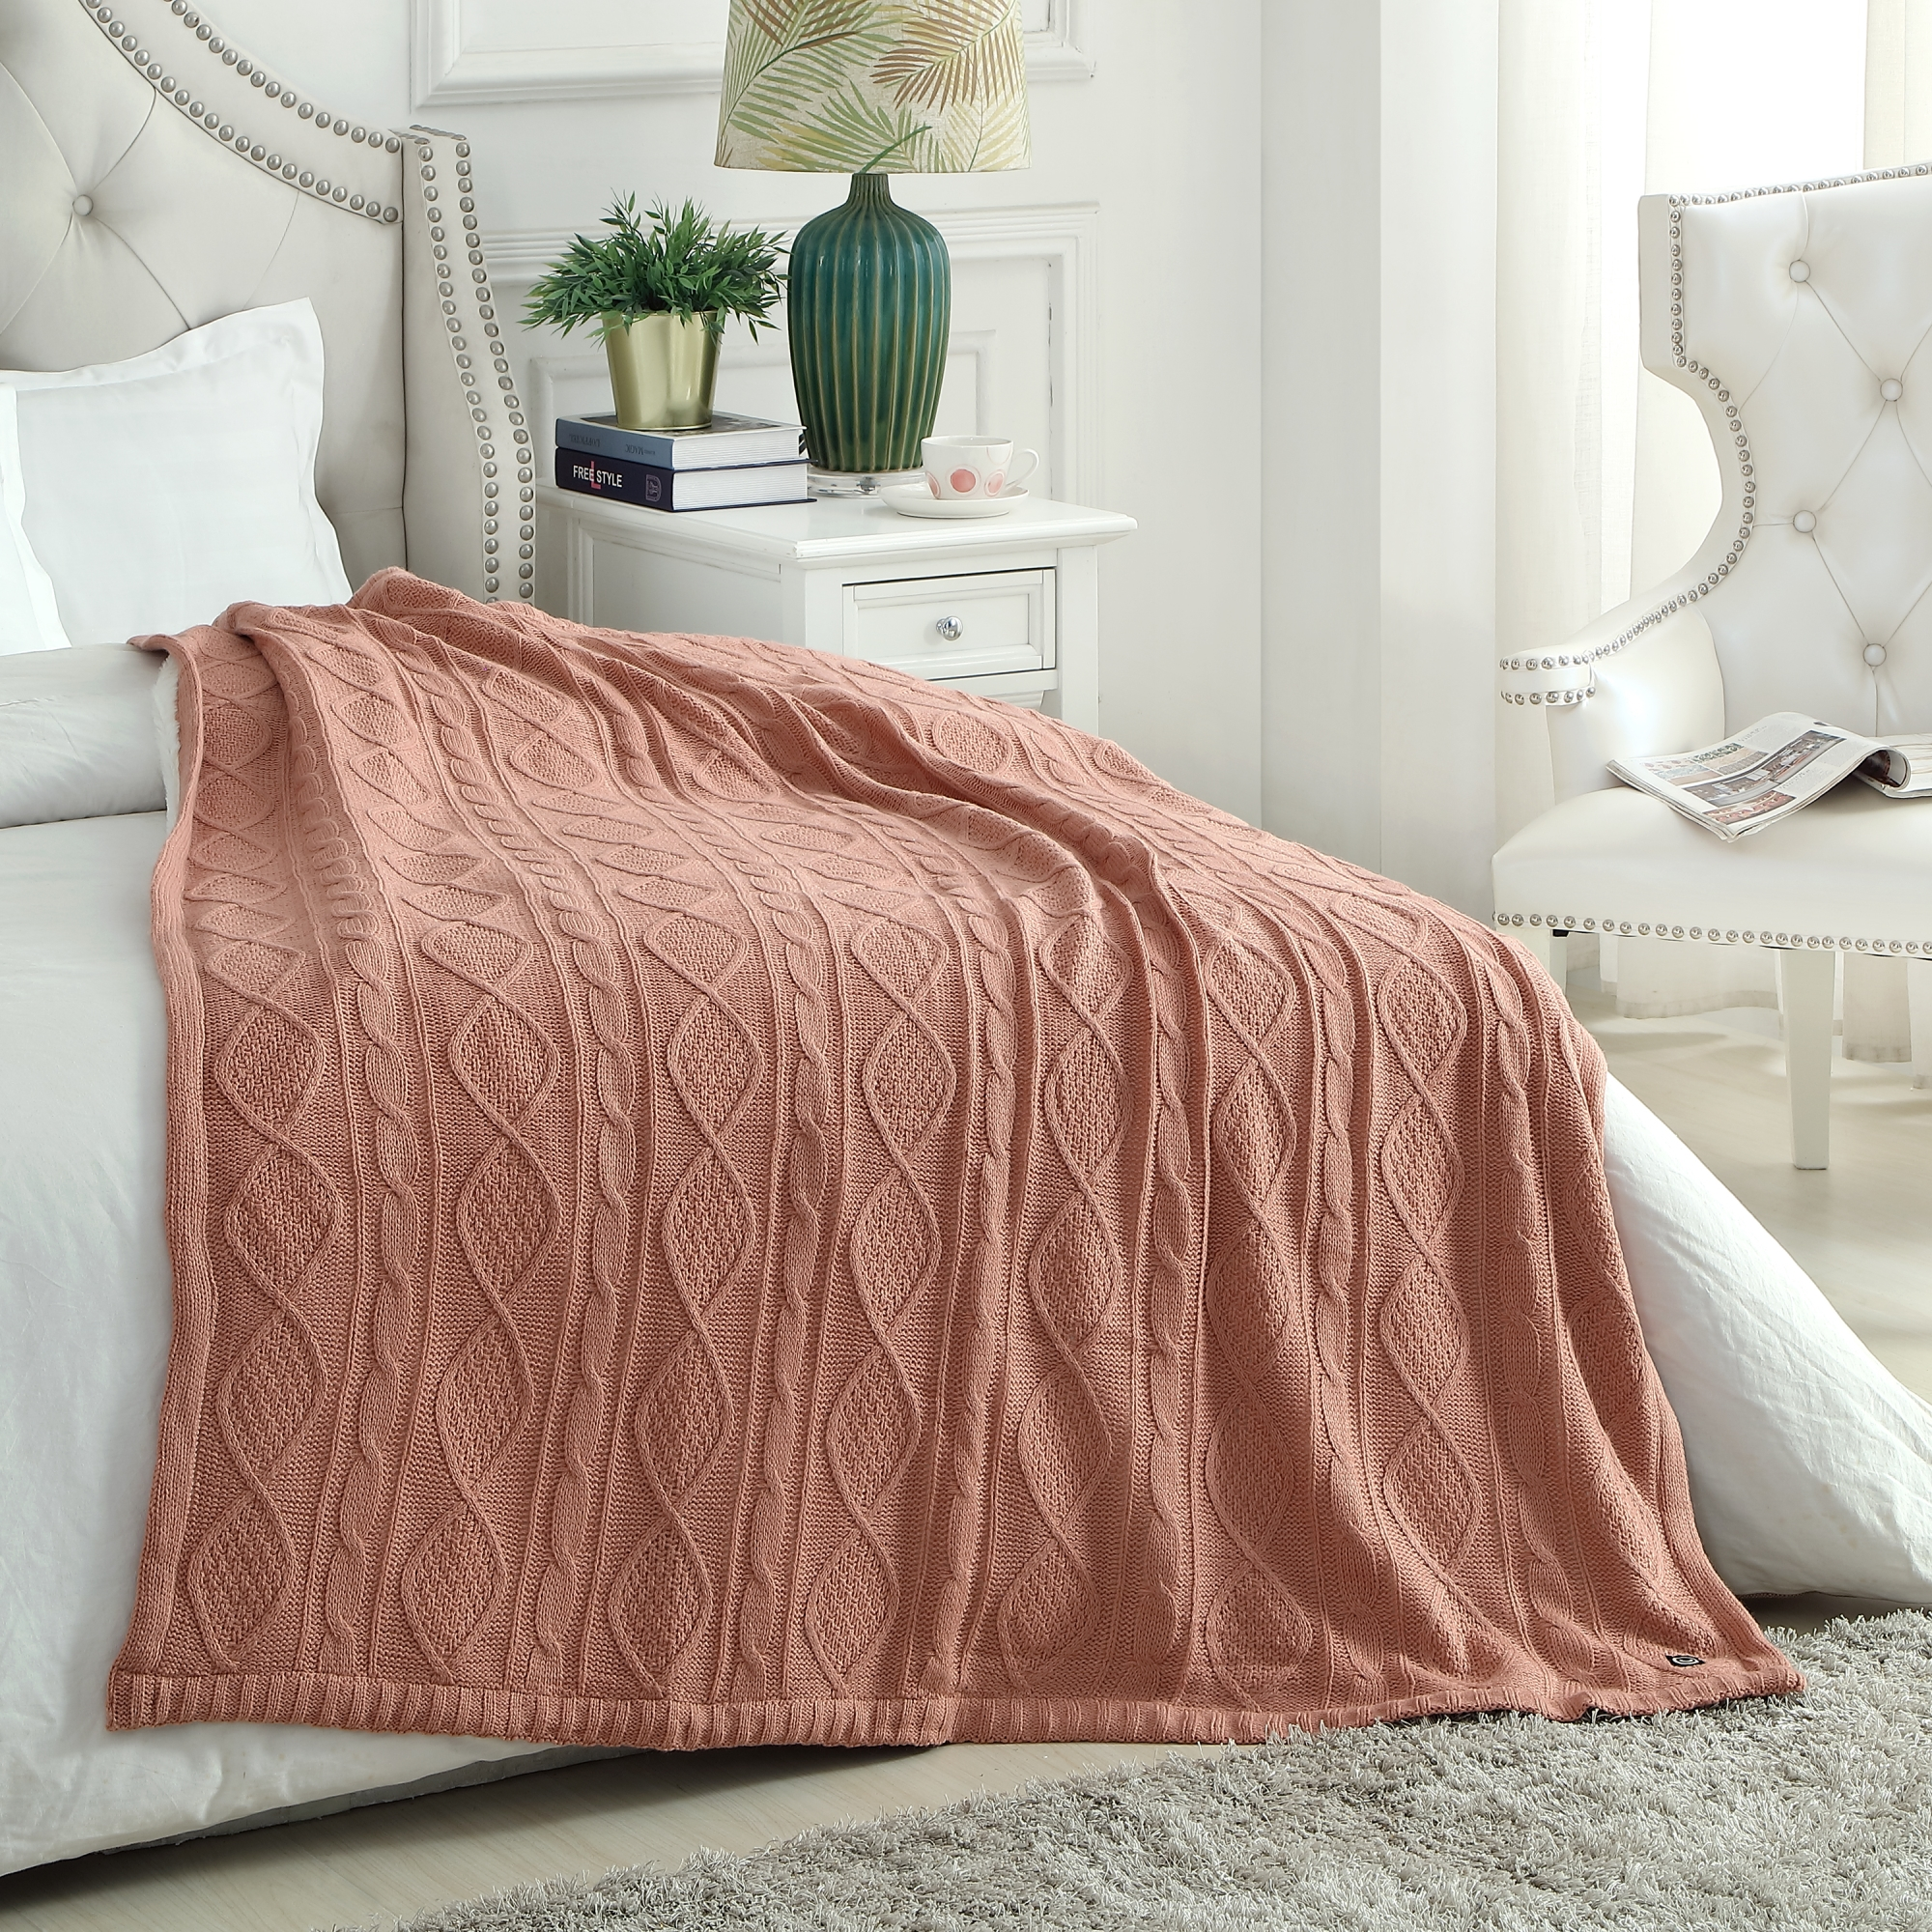 Cozy Tyme Blush Front: 100% Acrylic, Back: 100% Polyester Throw Reverse Faux Rabbit Fur Cozy